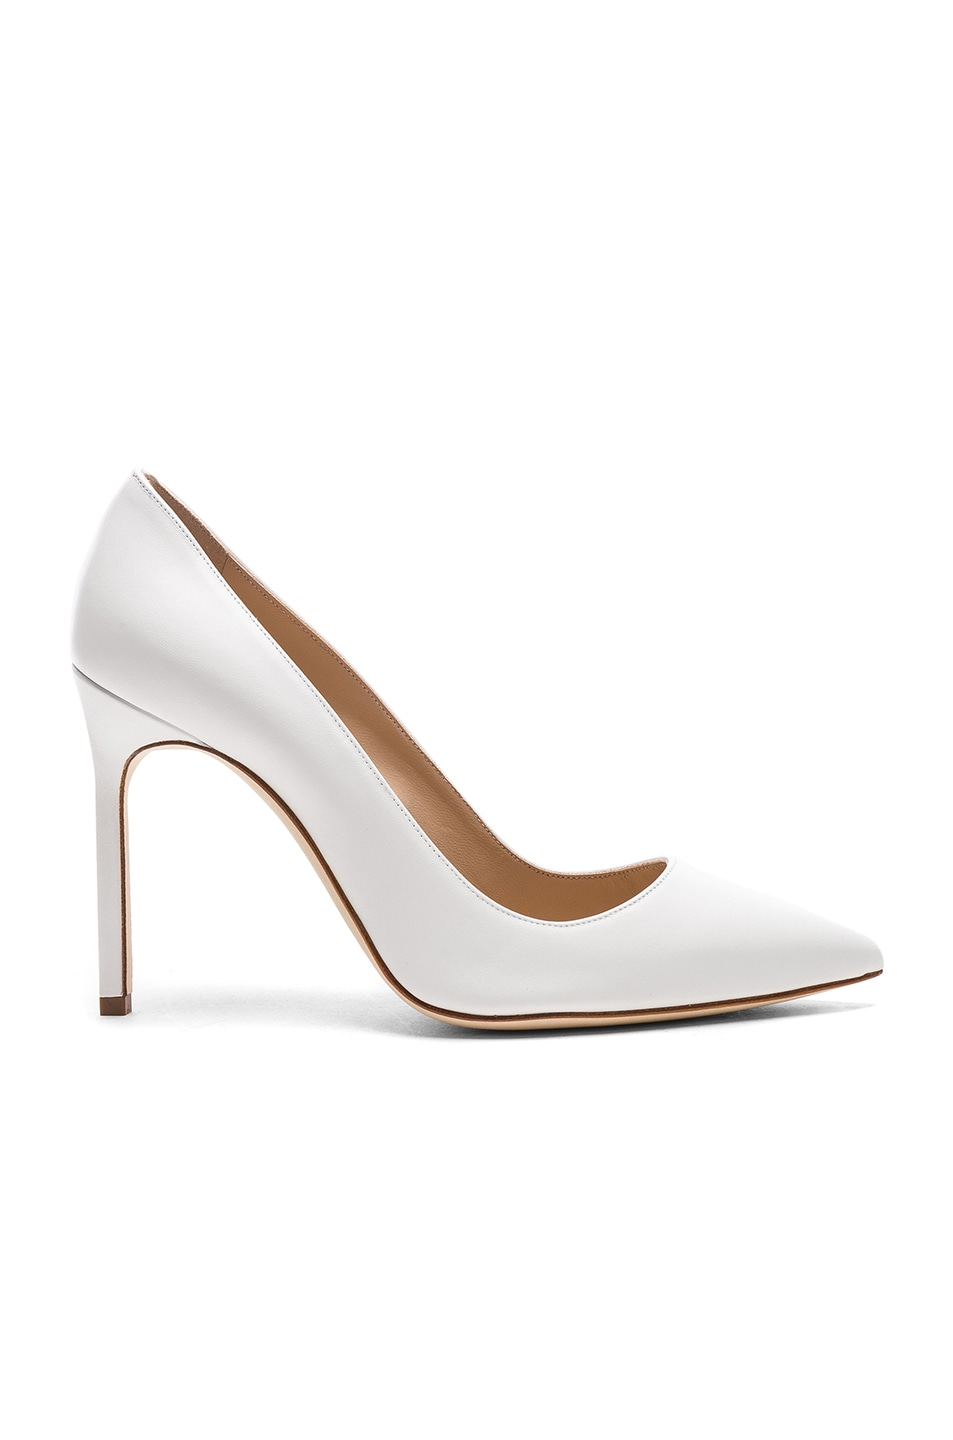 Image 1 of Manolo Blahnik Leather BB 105 Heels in White Leather